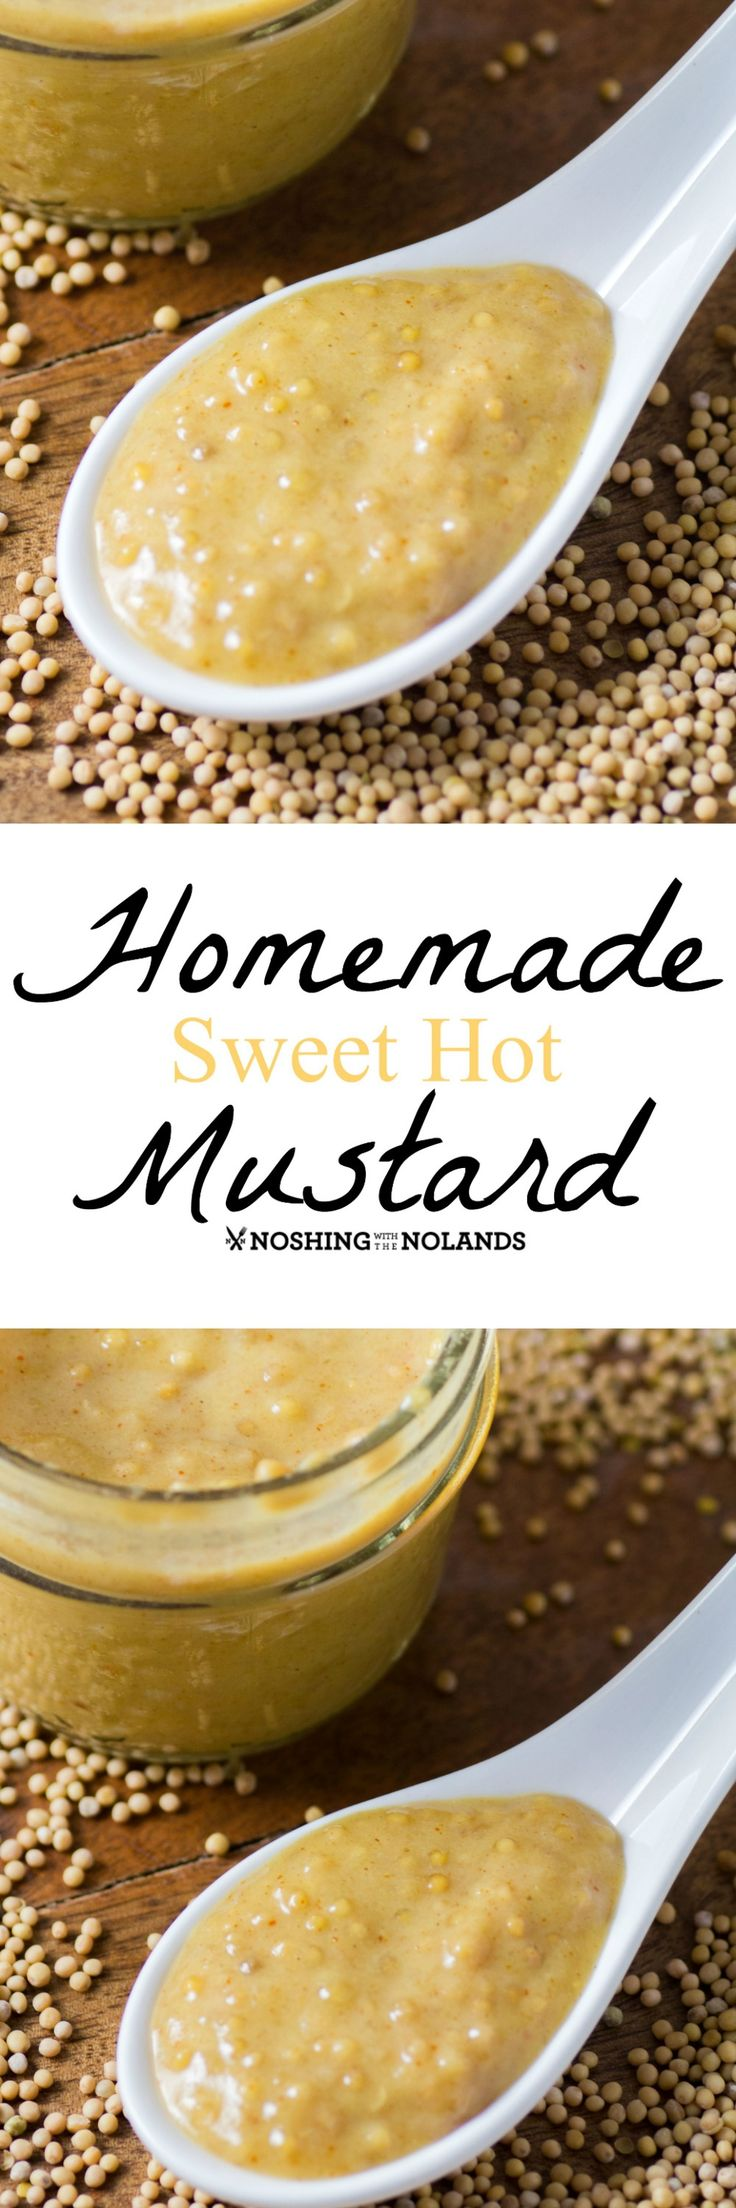 Homemade Sweet Hot Mustard by Noshing With The Nolands makes a great holiday gift to give and receive!! It goes perfectly with a holiday roast, ham or turkey!!